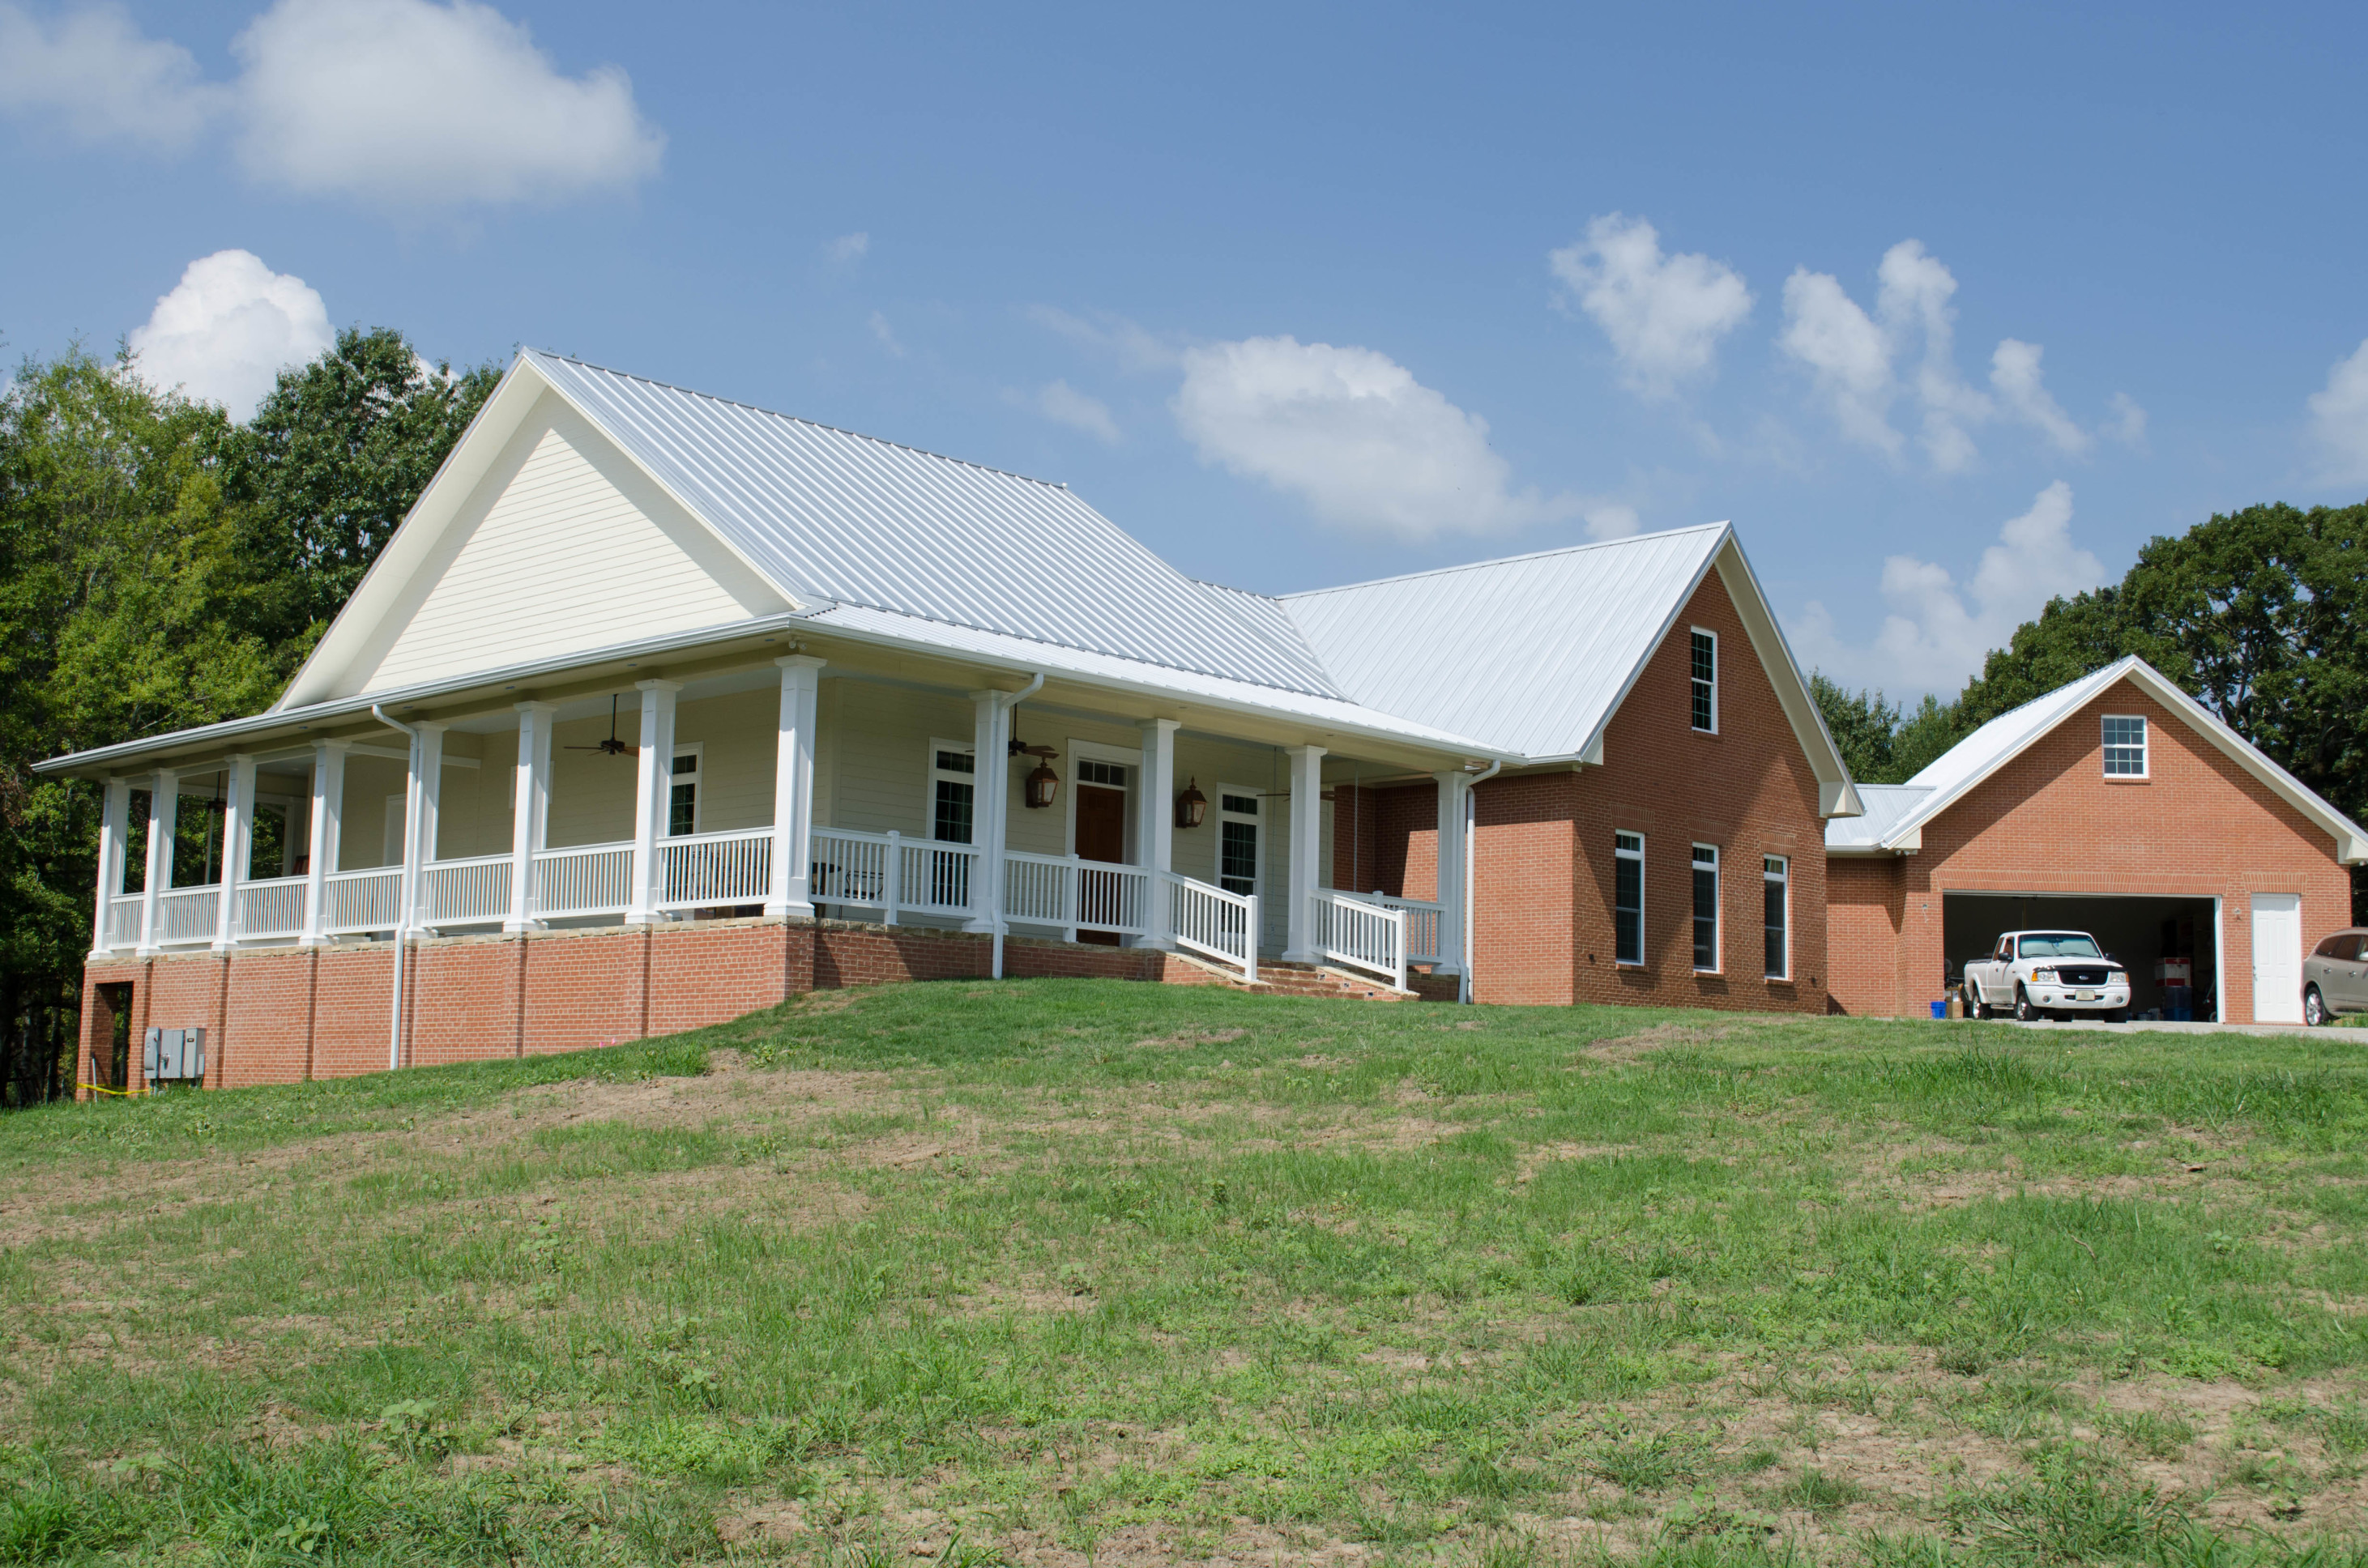 First icf home in yazoo county mississippi built using for Icf home